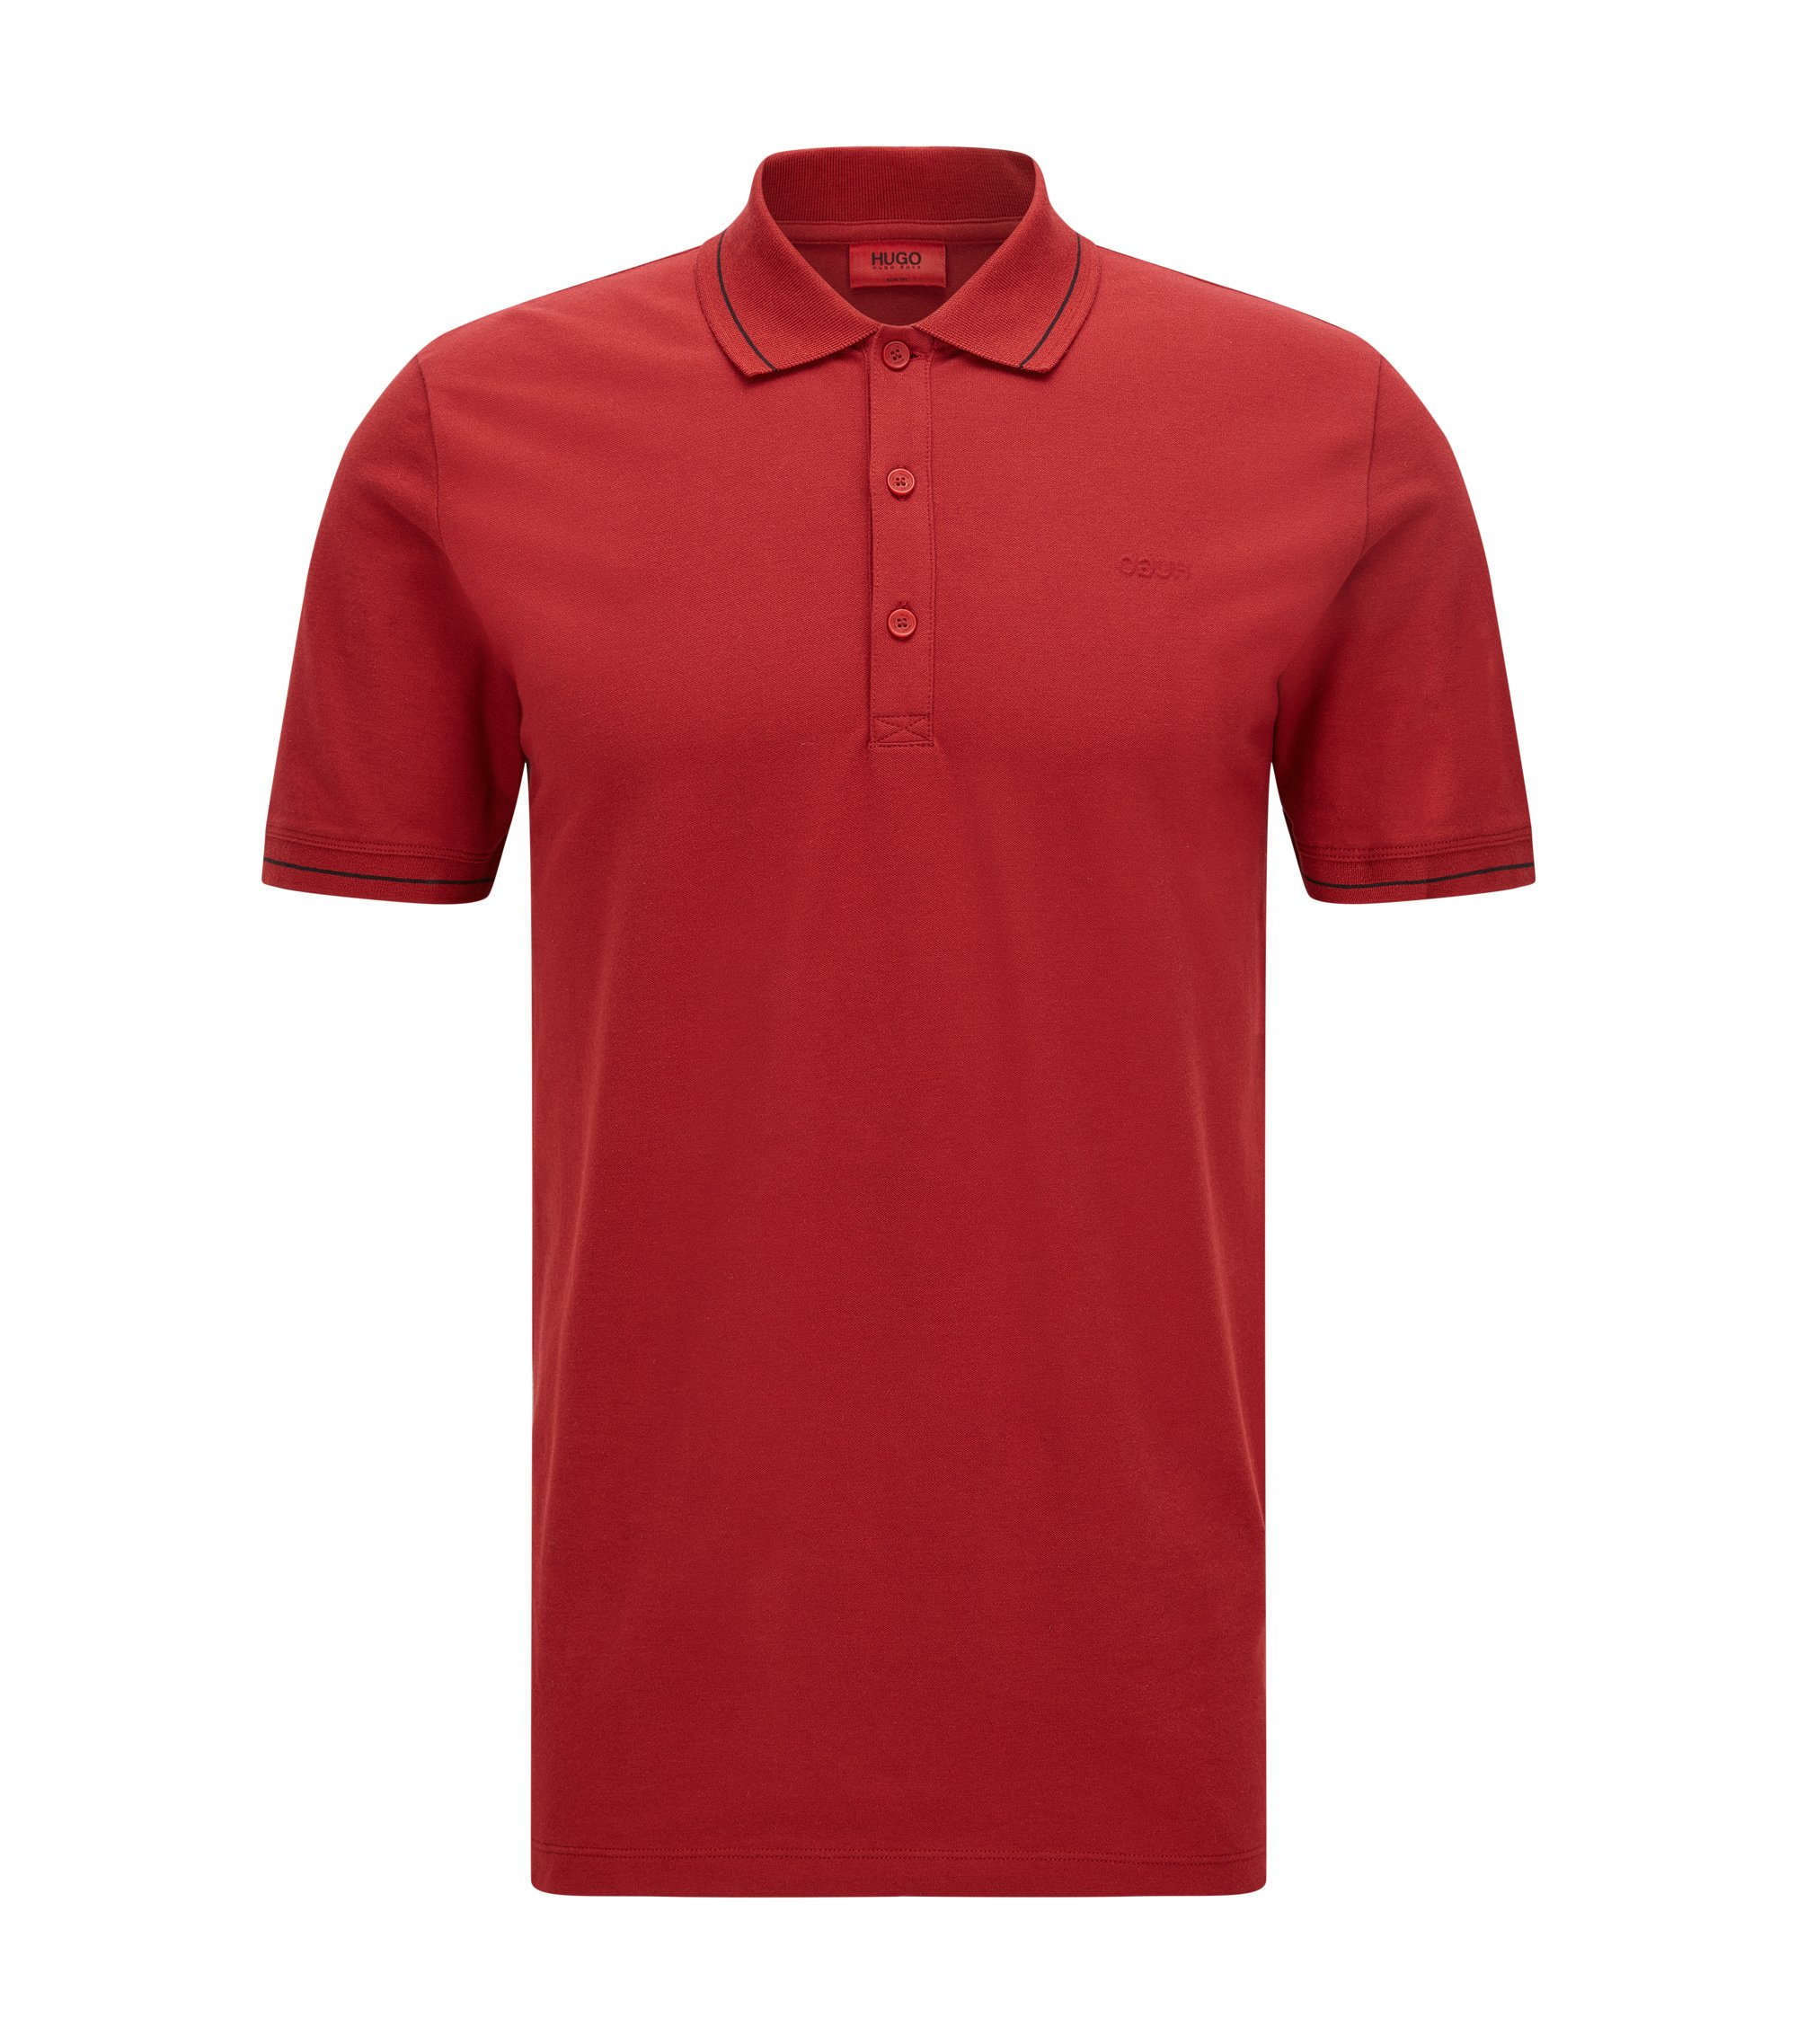 Stretch Cotton Polo, Slim Fit | Daymont, Dark Red